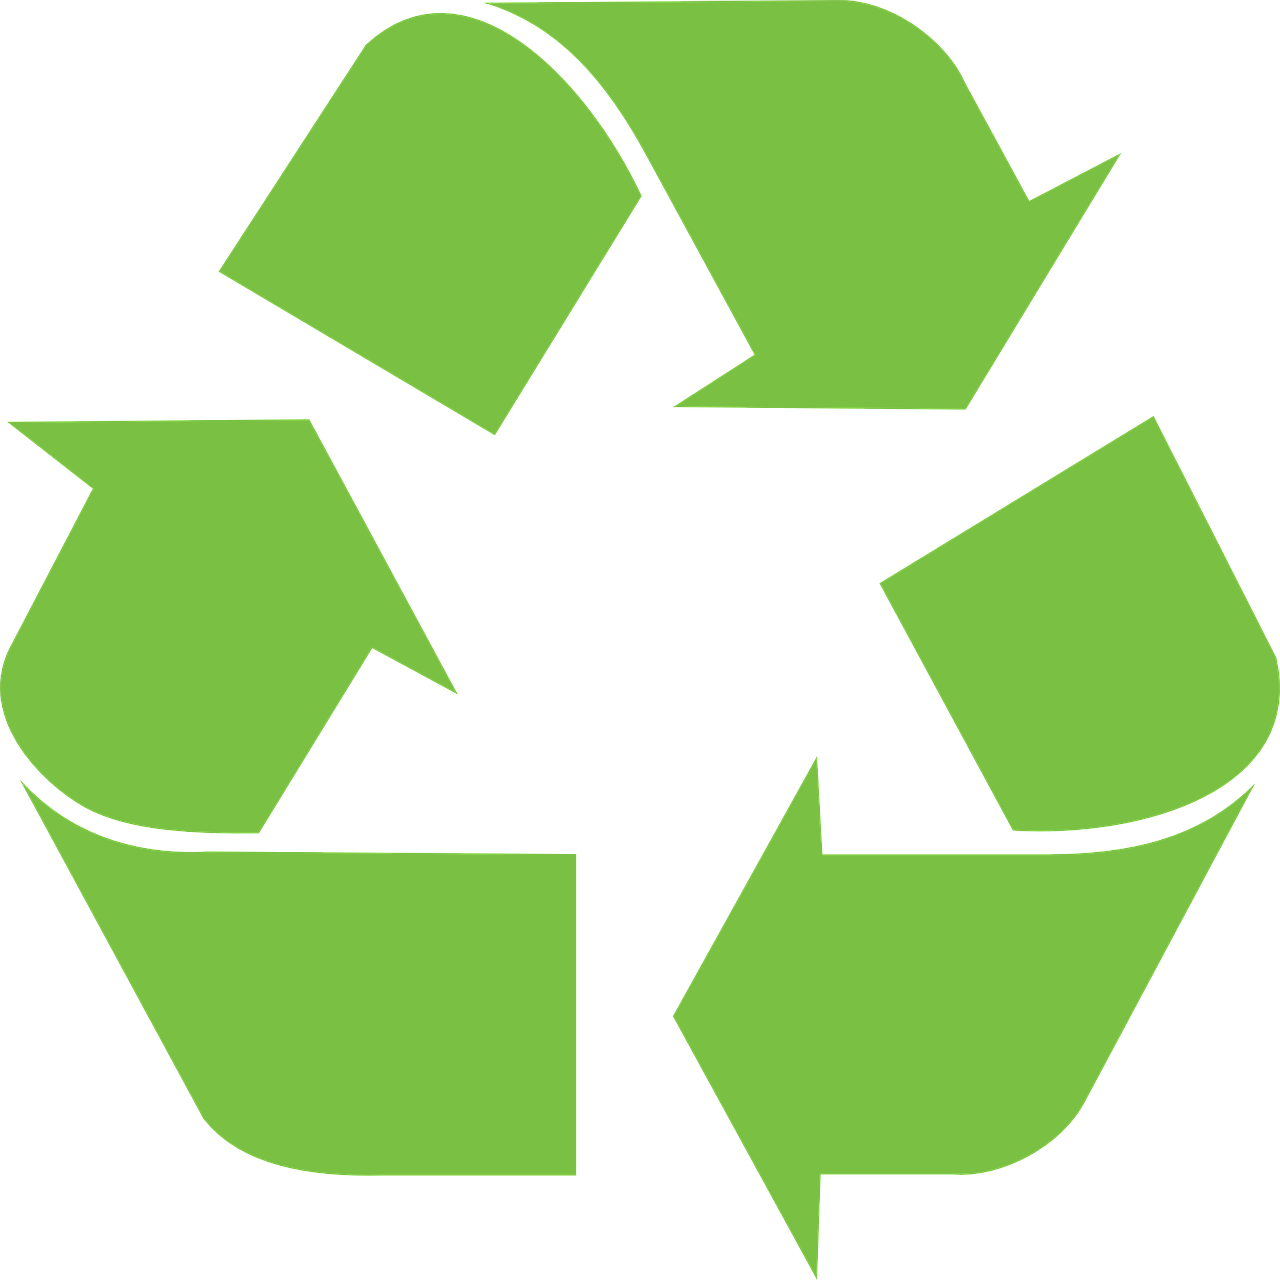 recycling-305569_1280.png